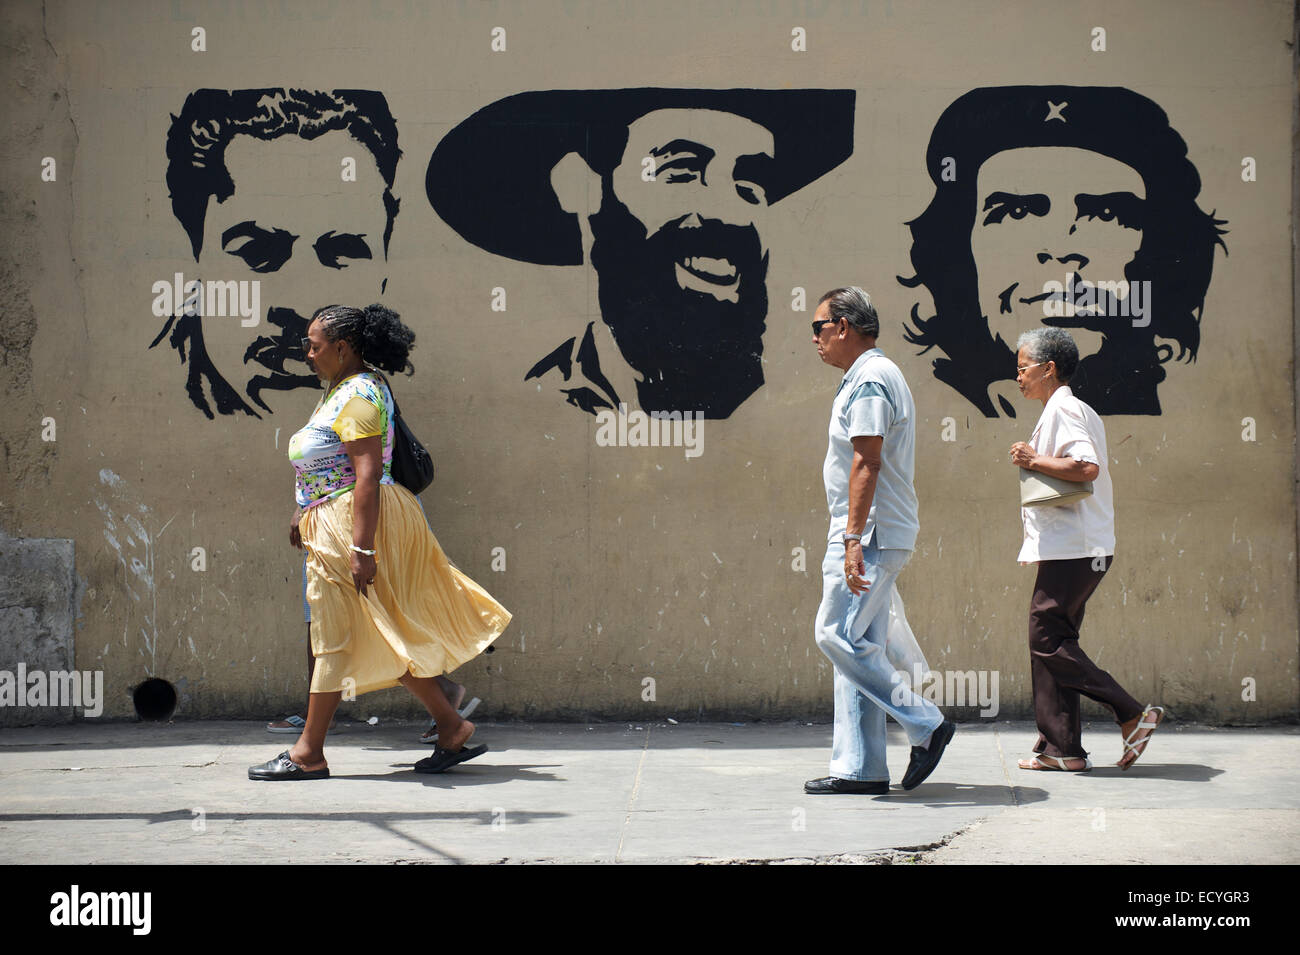 HAVANA, CUBA - MAY 16, 2011: Cuban people walk in front of billboard featuring revolutionaries Mella, Cienfuegos, - Stock Image